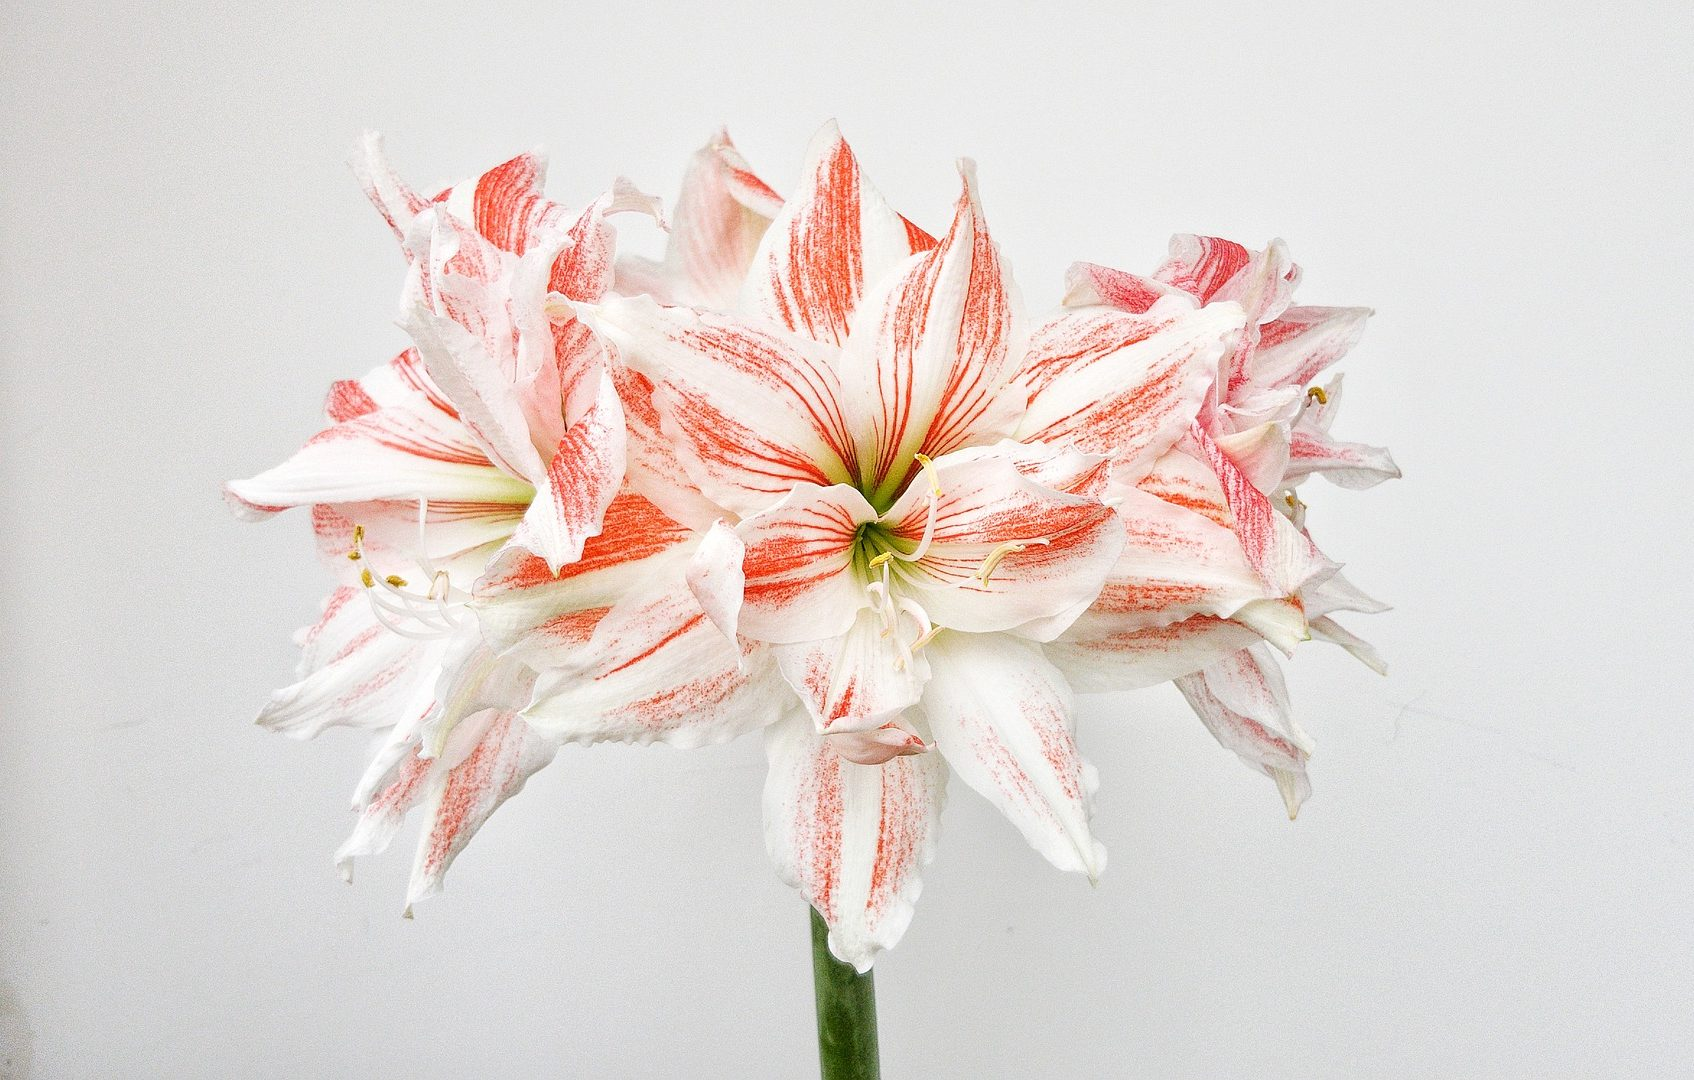 Pink and white hippeastrum flowers blooming in front of a white background